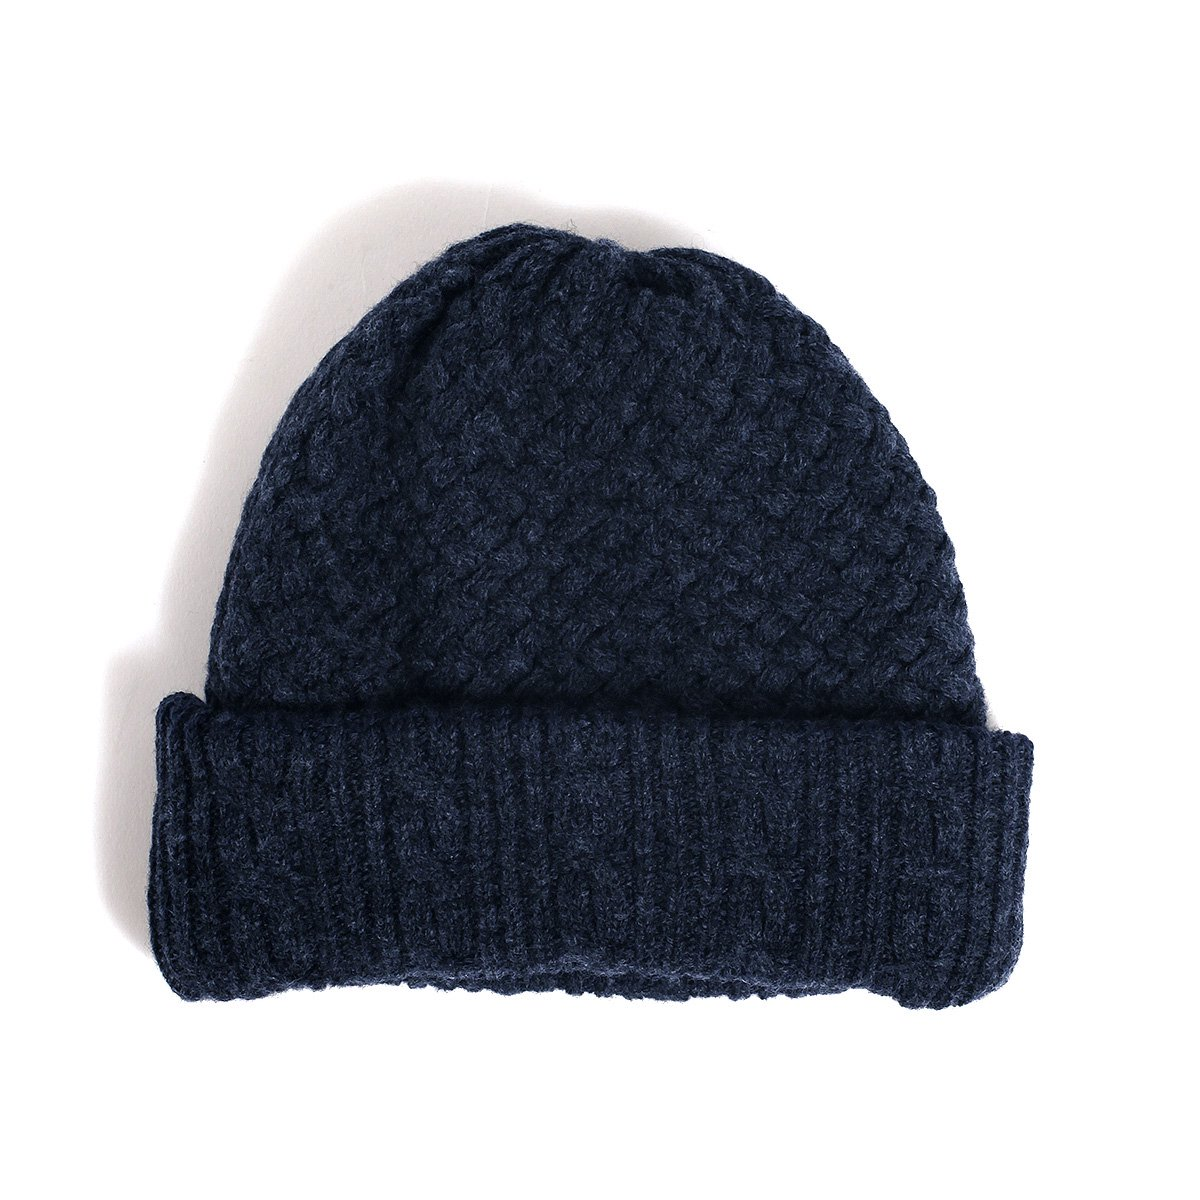 LIGHT-WEIGHT REVERSIBLE KNITCAP TYPE C 詳細画像5